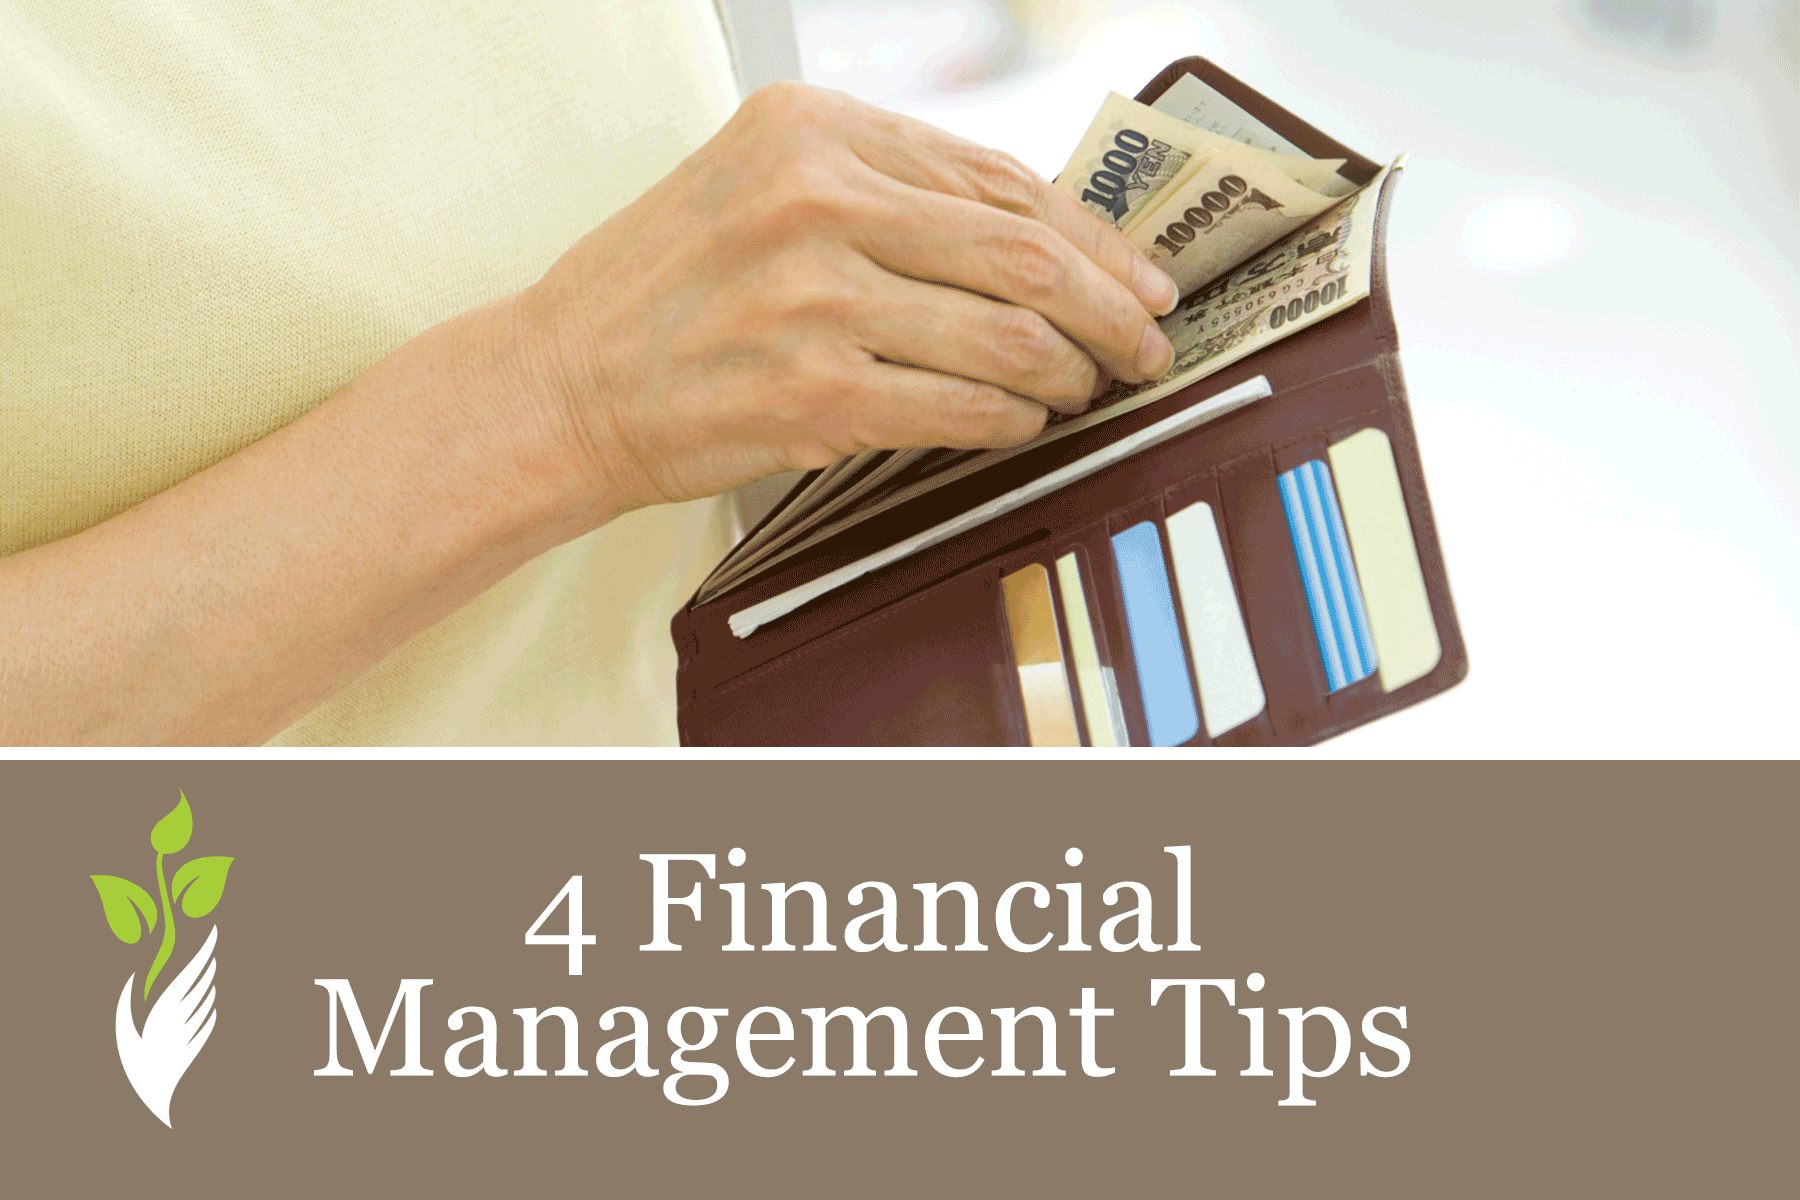 4 Financial Management Tips to Help Your Loved One